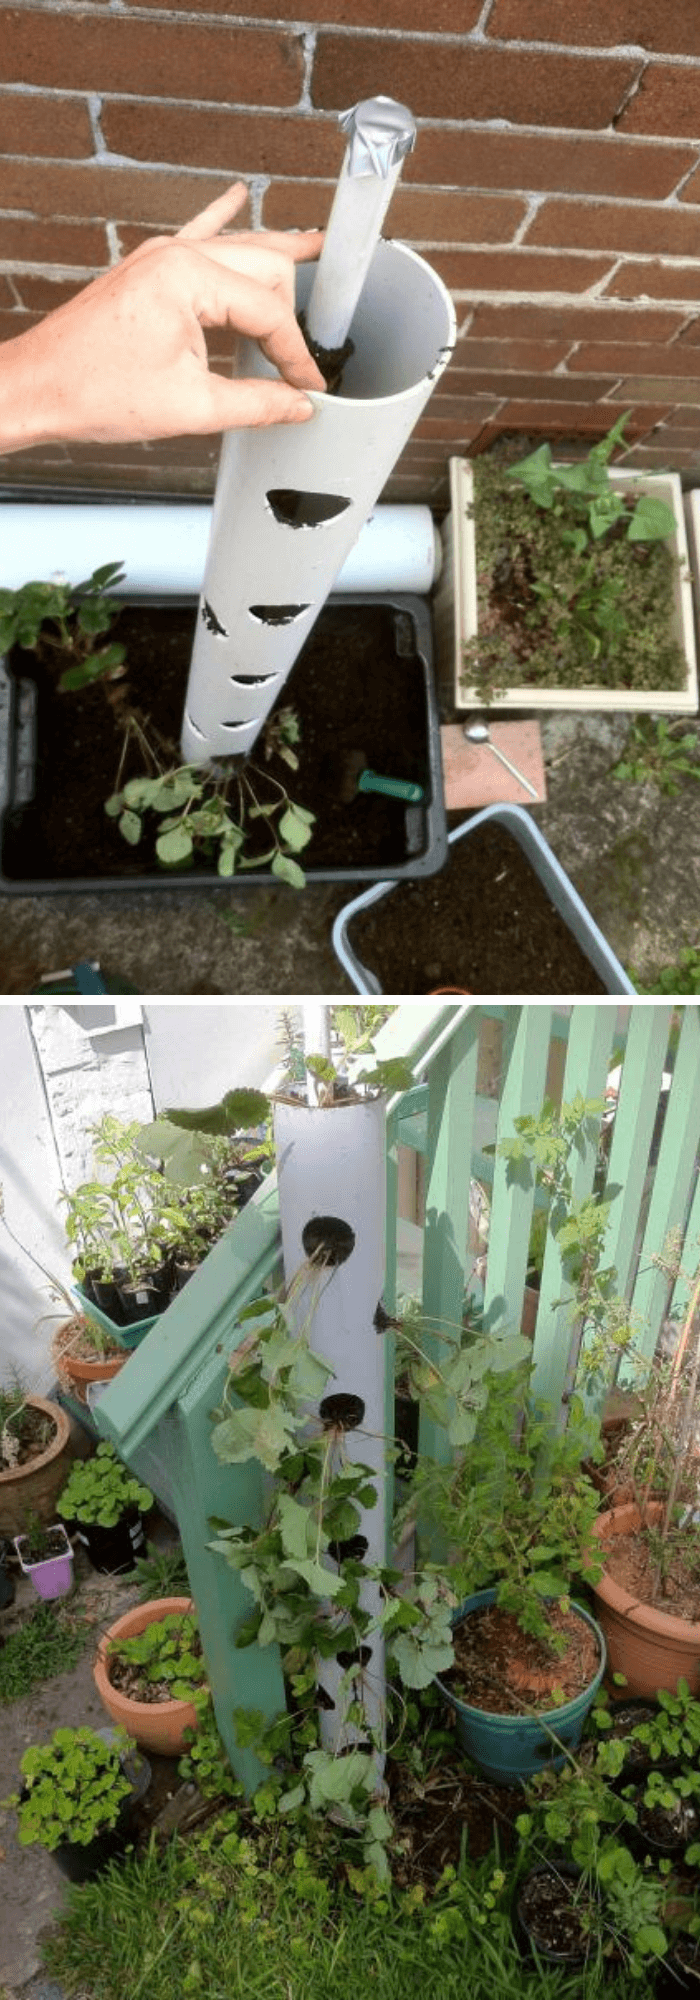 DIY PVC Pipe Planters for Your Garden Vertical strawberry tube planter